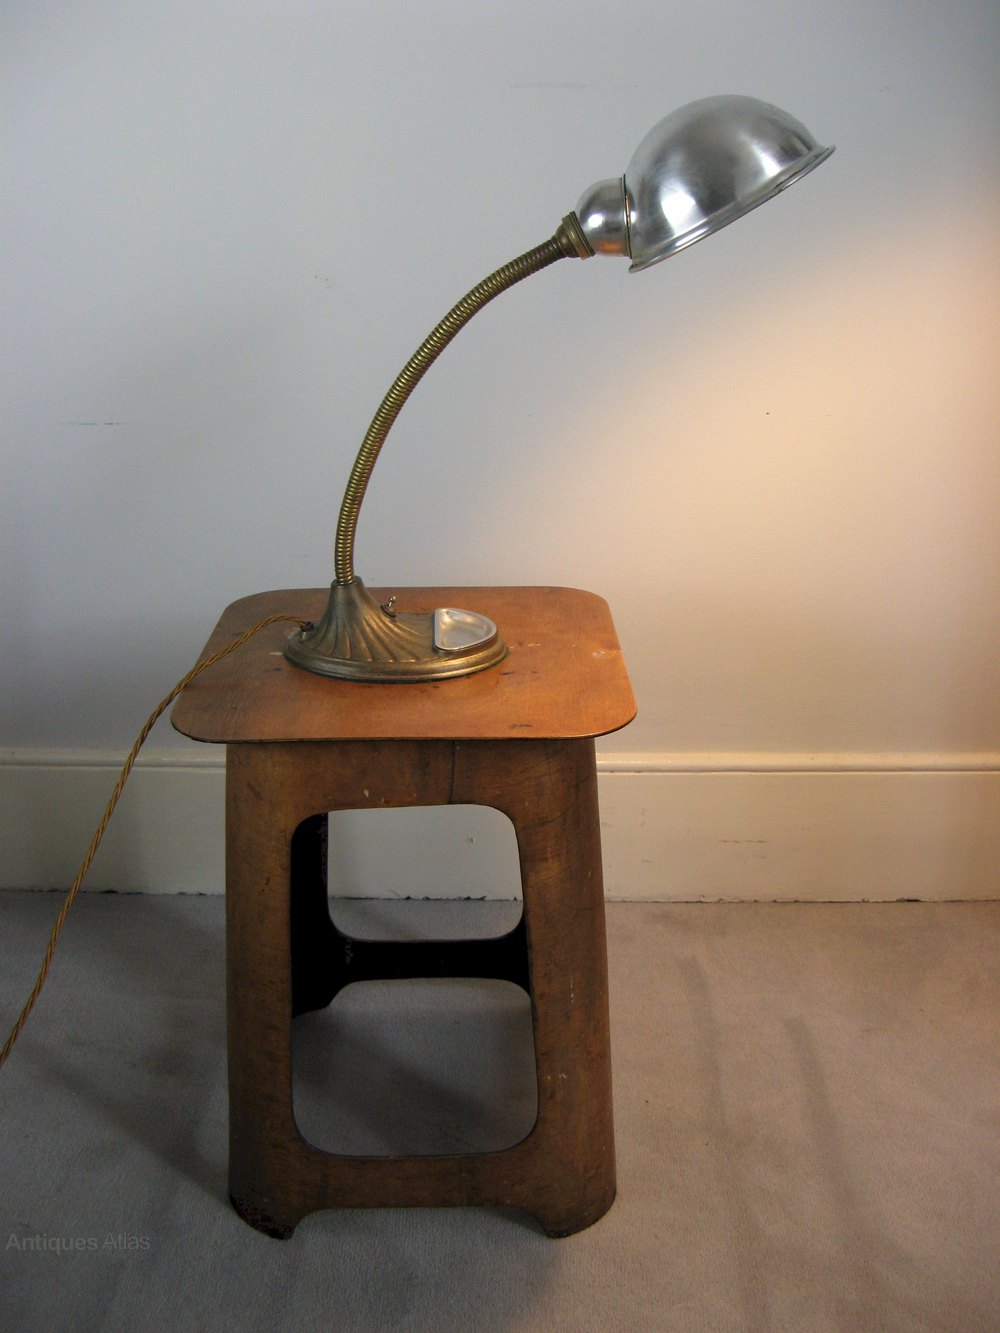 ... desk lamp %%alt5%% %%alt6%% - Antiques Atlas - 1940's Industrial Bendy Desk Lamp